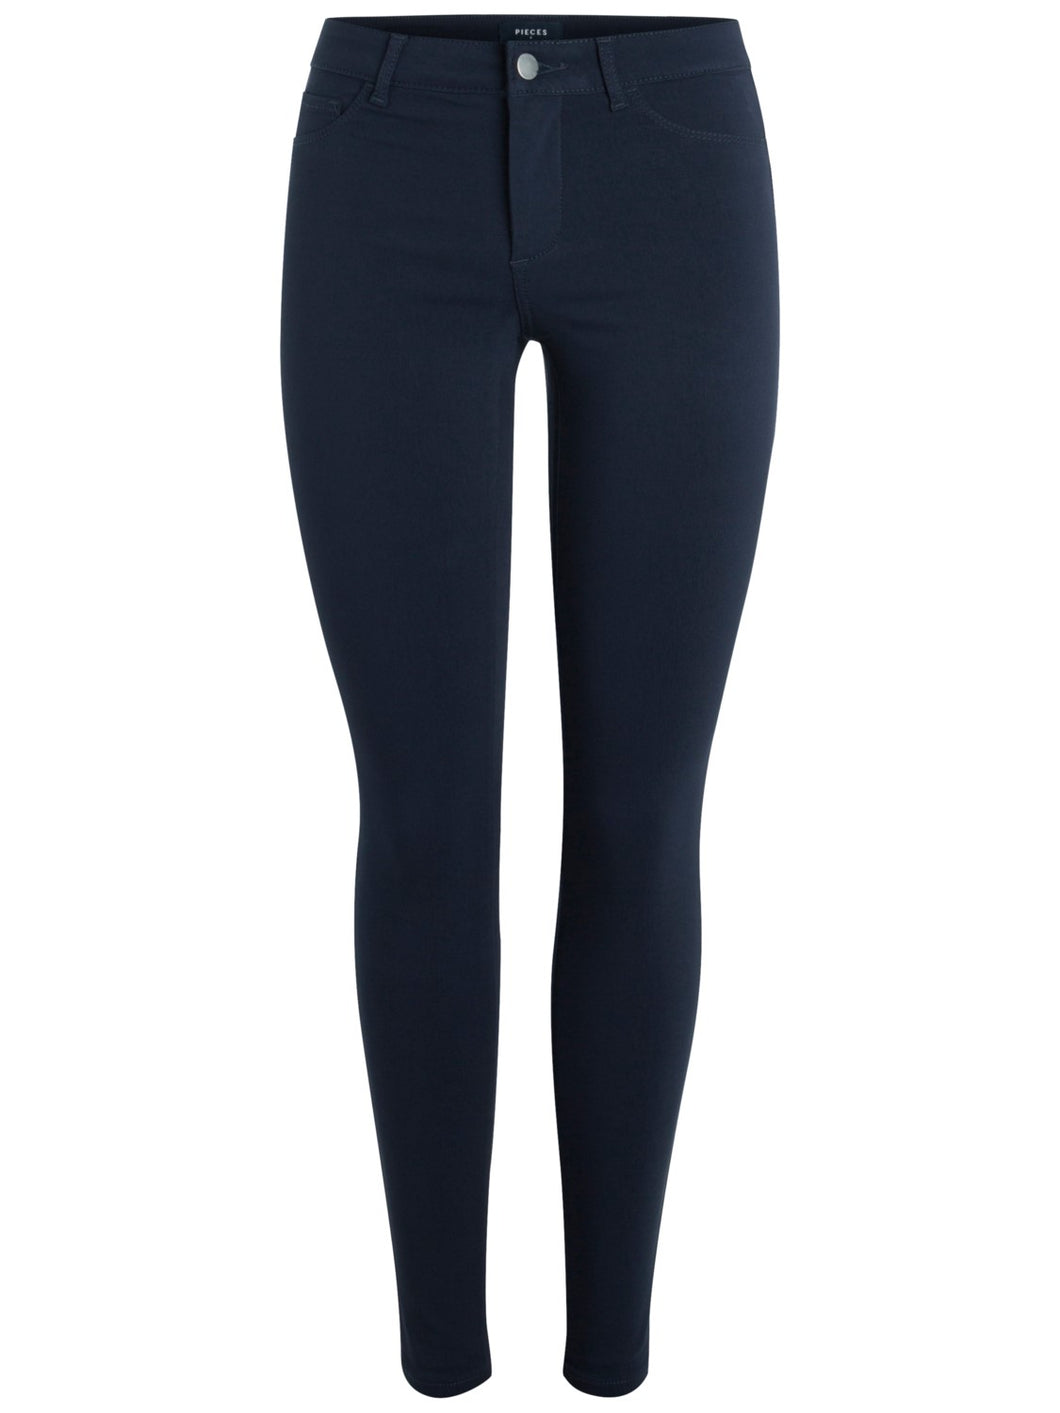 Pieces Betty Navy Jeggings Lily S Boutique Ltd